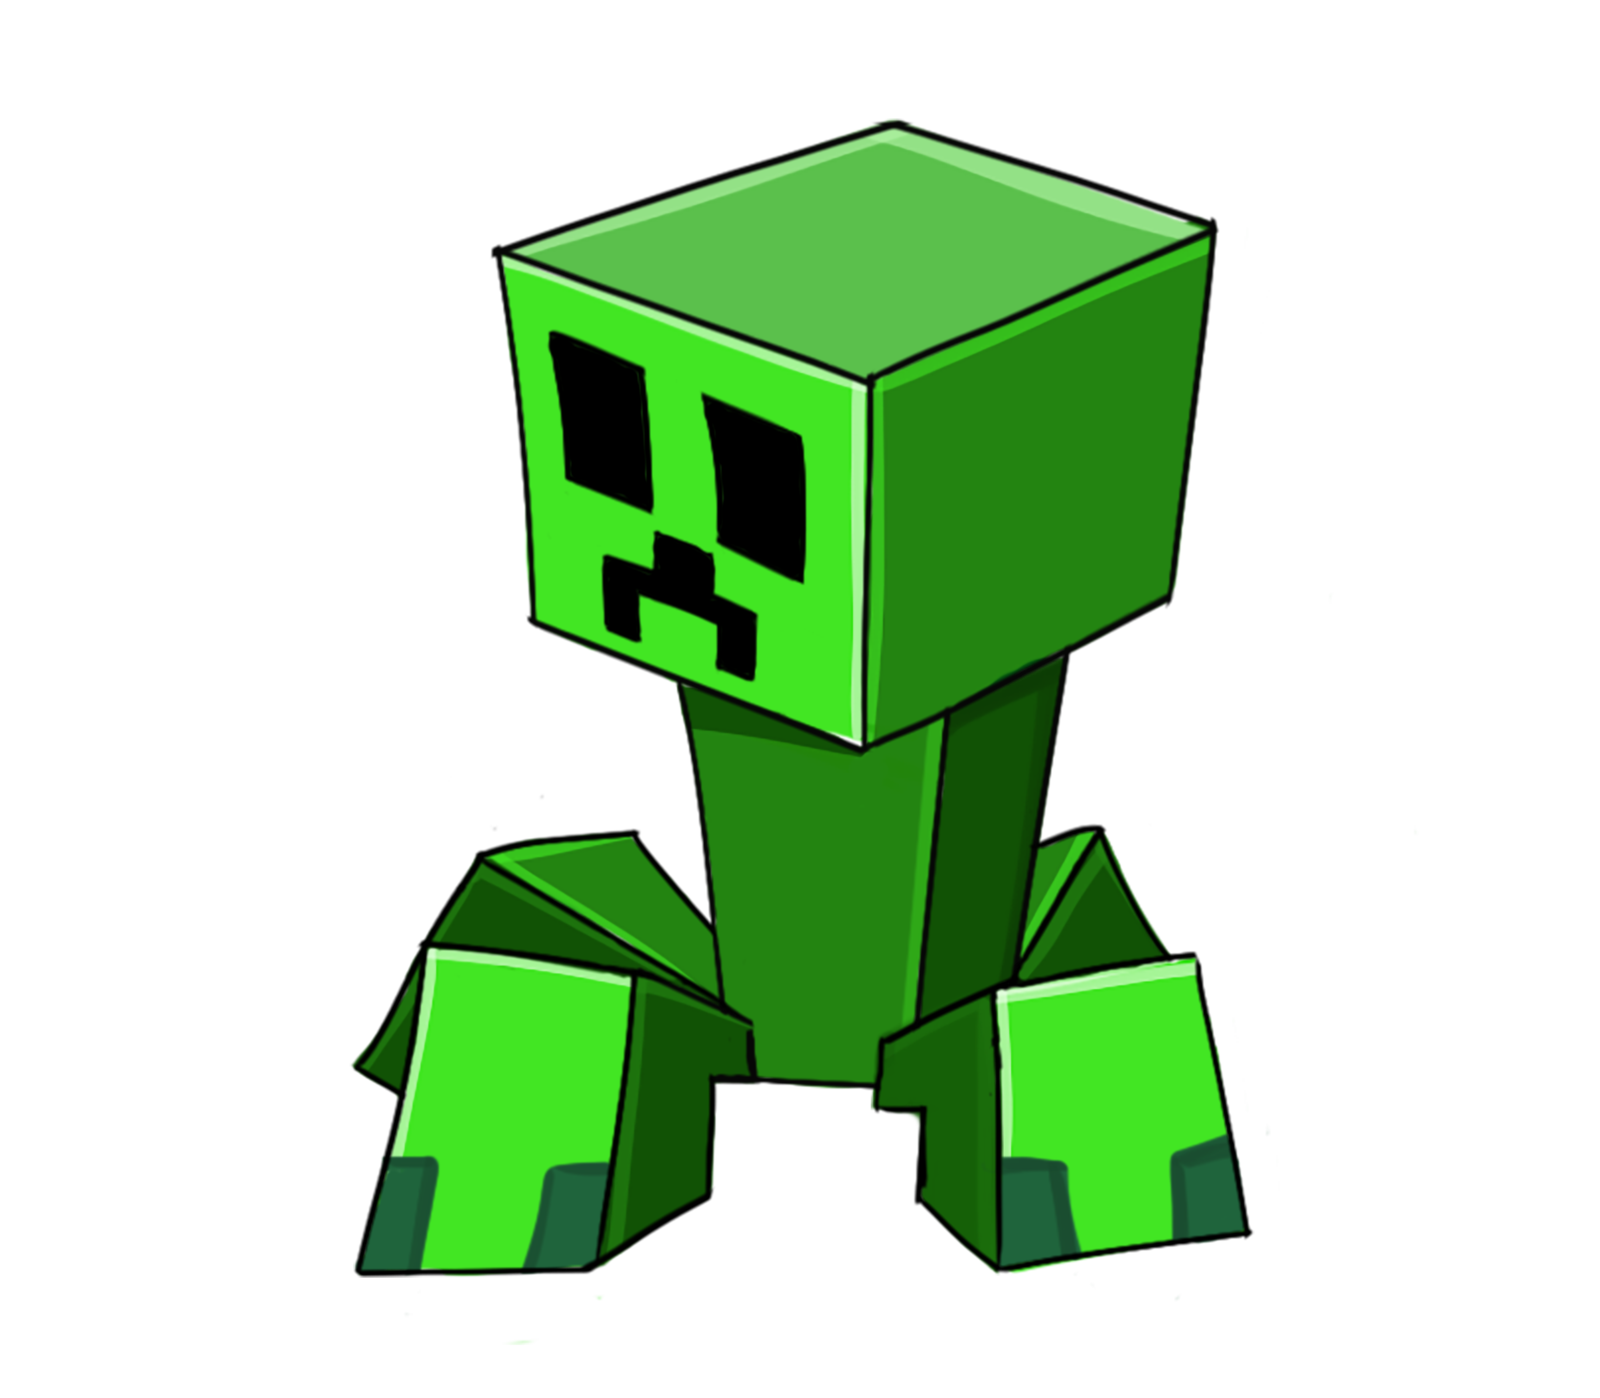 Creeper Transparent Background.